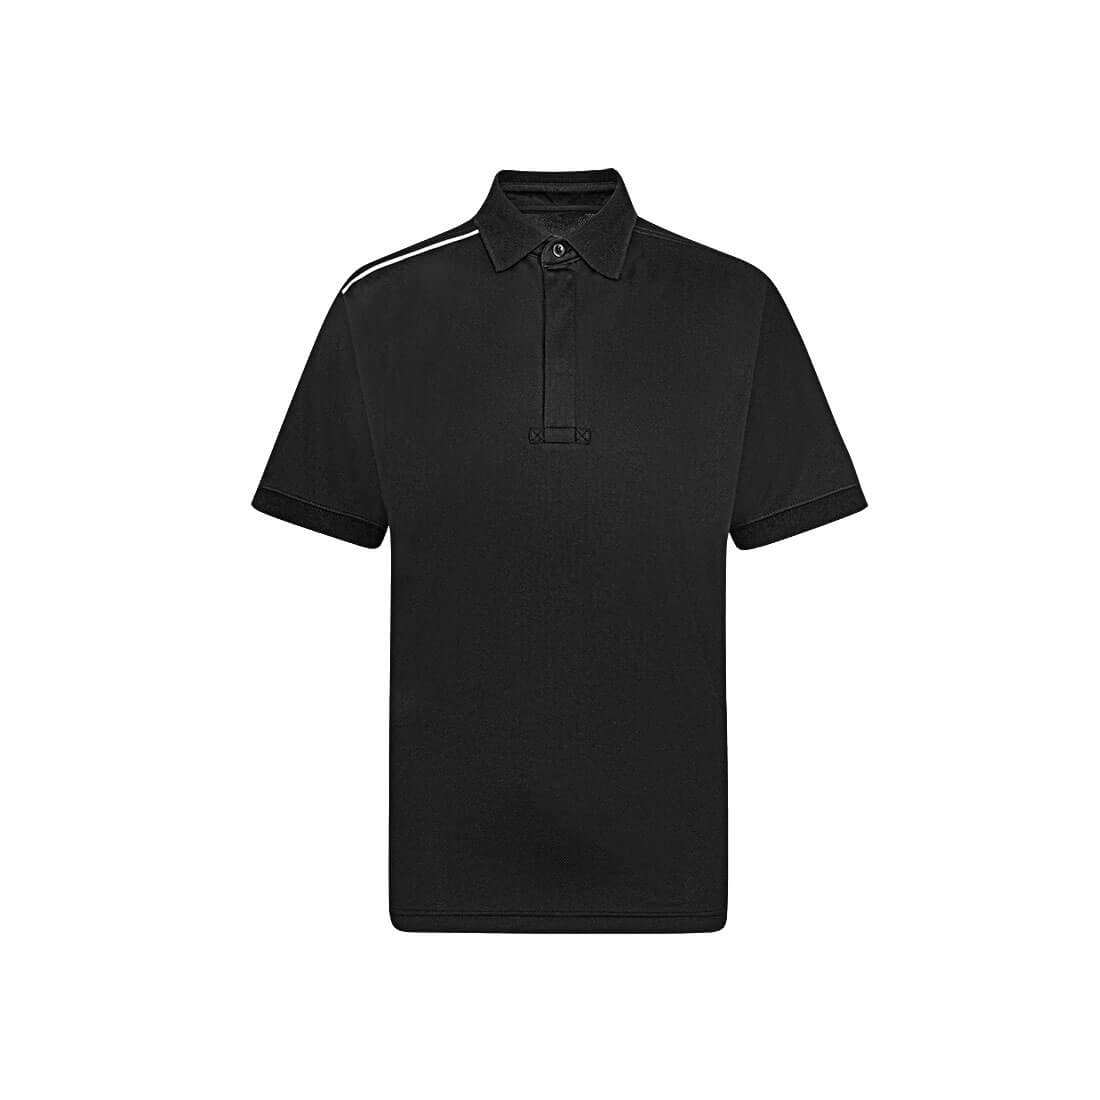 T820 Portwest KX3 polo shirt